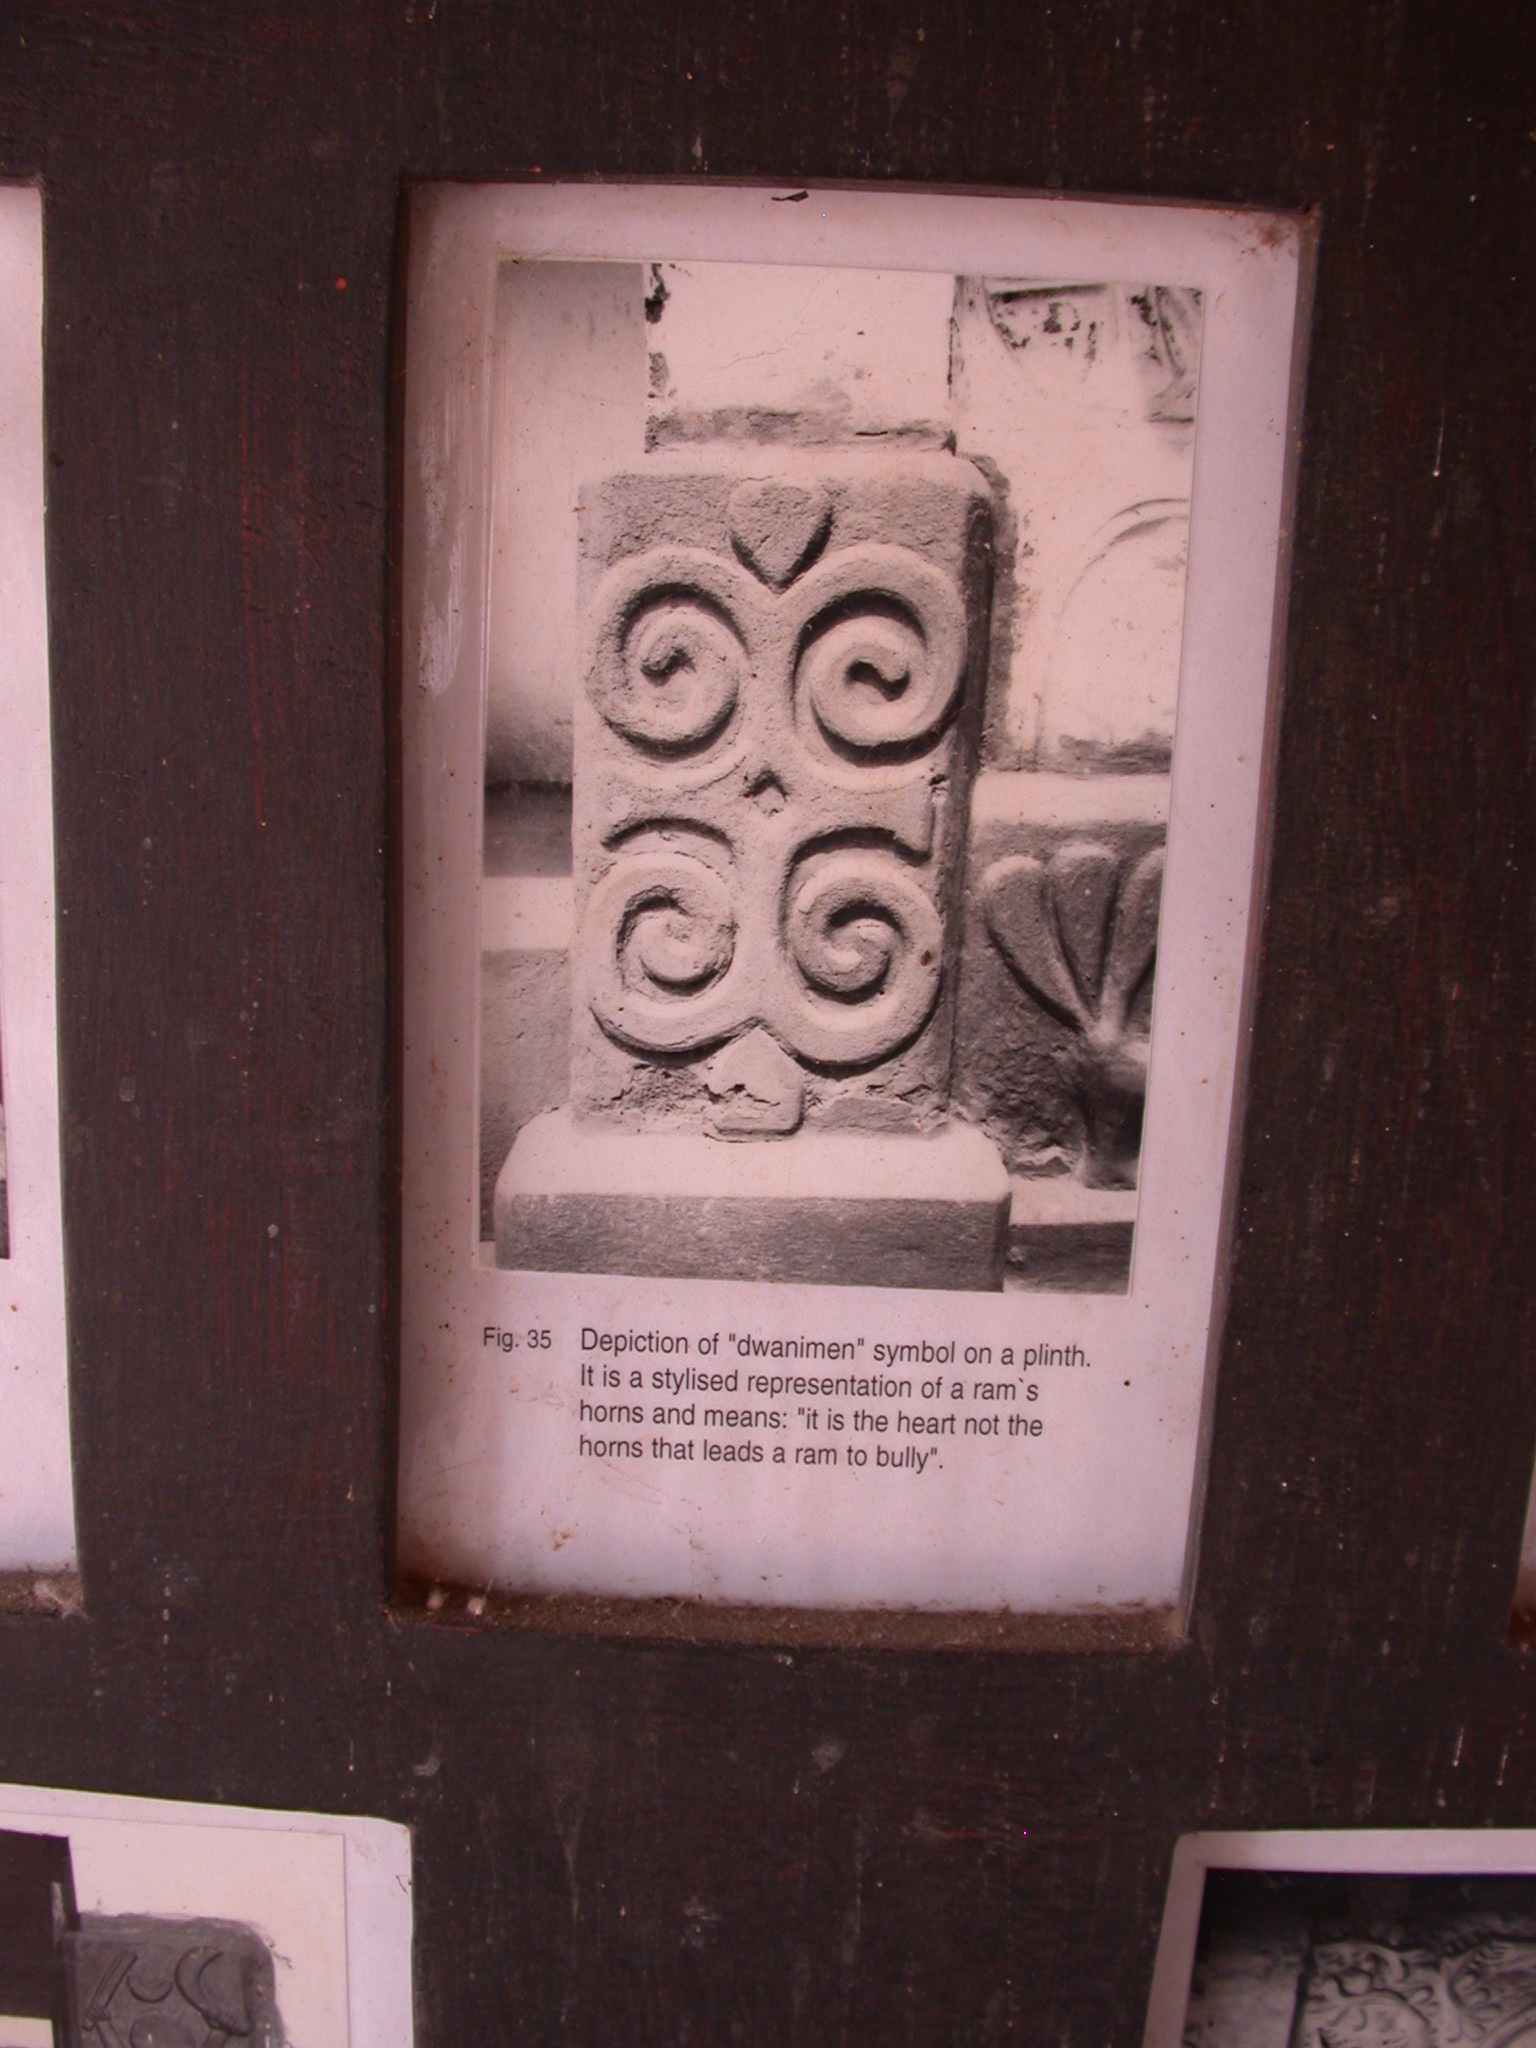 Photograph of Dwanimen Ram Horn Symbol on Plinth Meaning It Is the Heart Not the Horns That Leads a Ram to Bully, Asante Traditional Shrine at Ejisu-Besease, Ghana